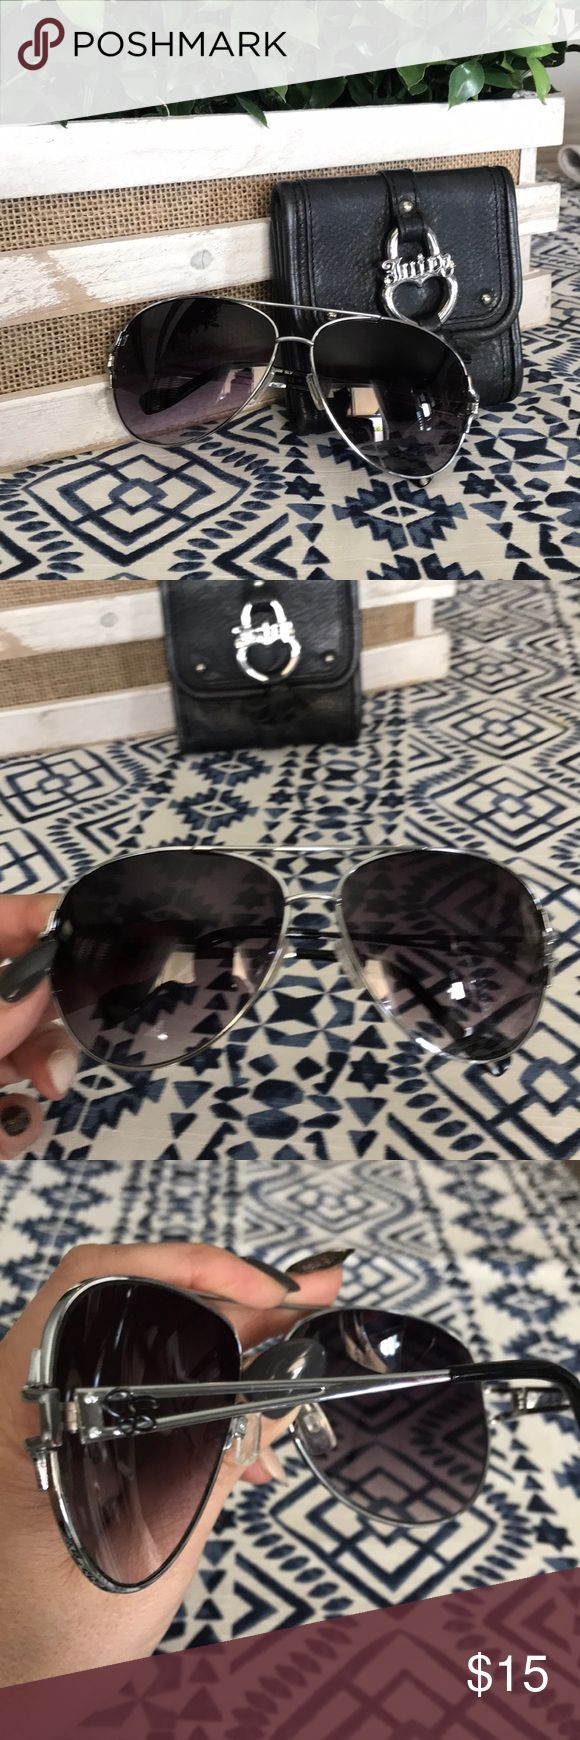 Jessica Simpson Sunglasses Jessica Simpson Aviator sunglasses in silver with black lenses.  These have been used but have a lot of life left Jessica Simpson Accessories Sunglasses